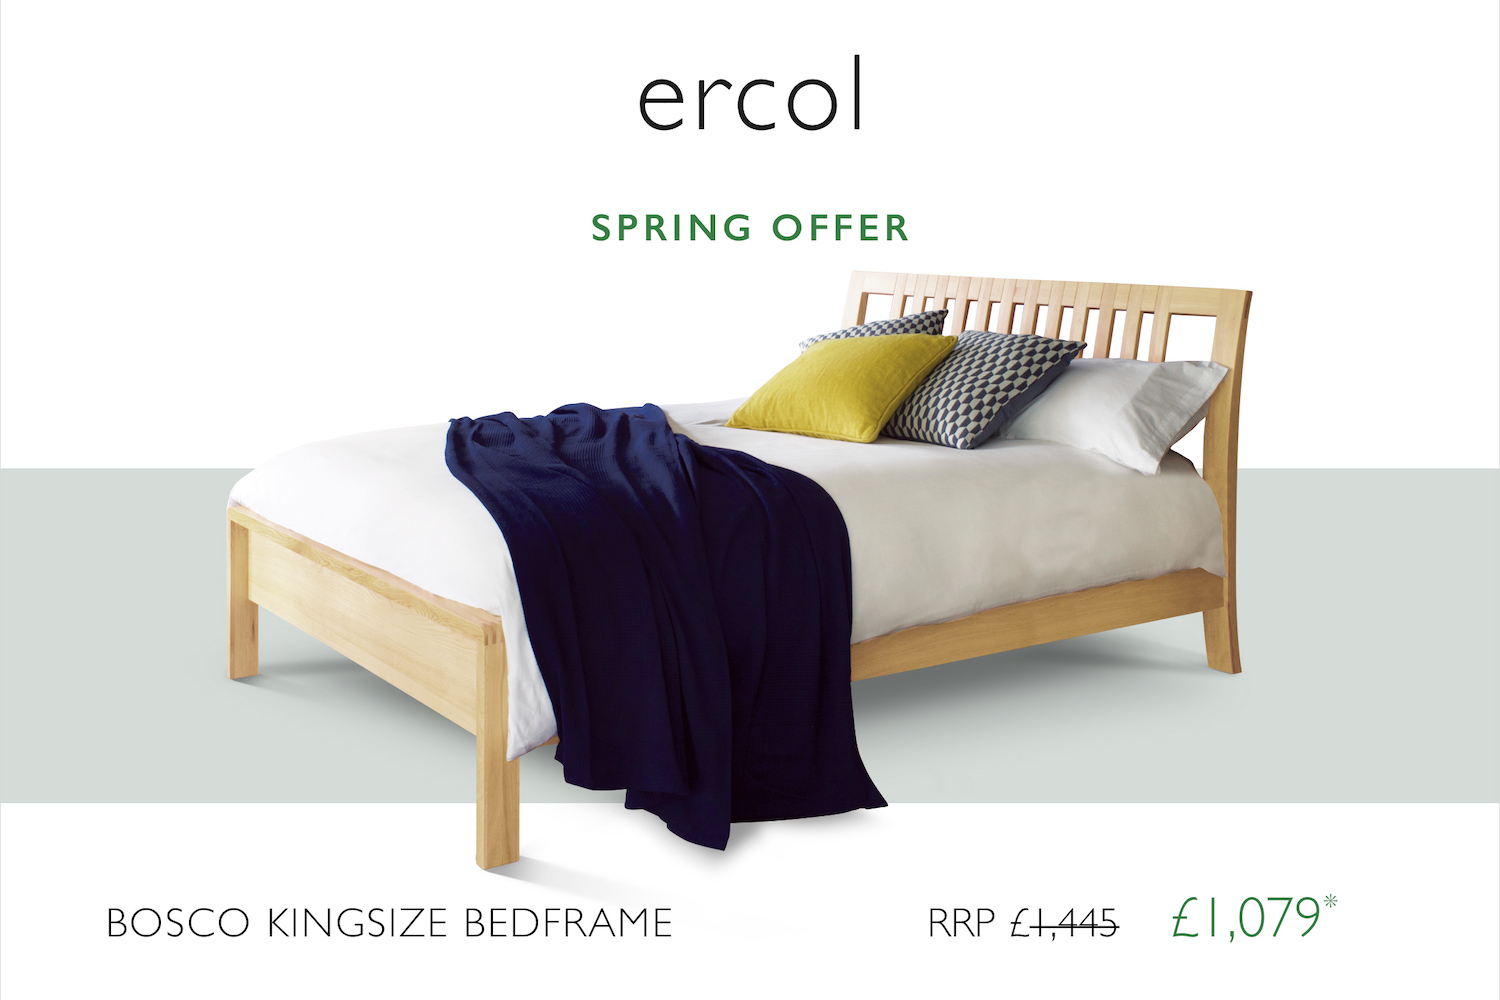 ercol Spring 2021 bed promotion